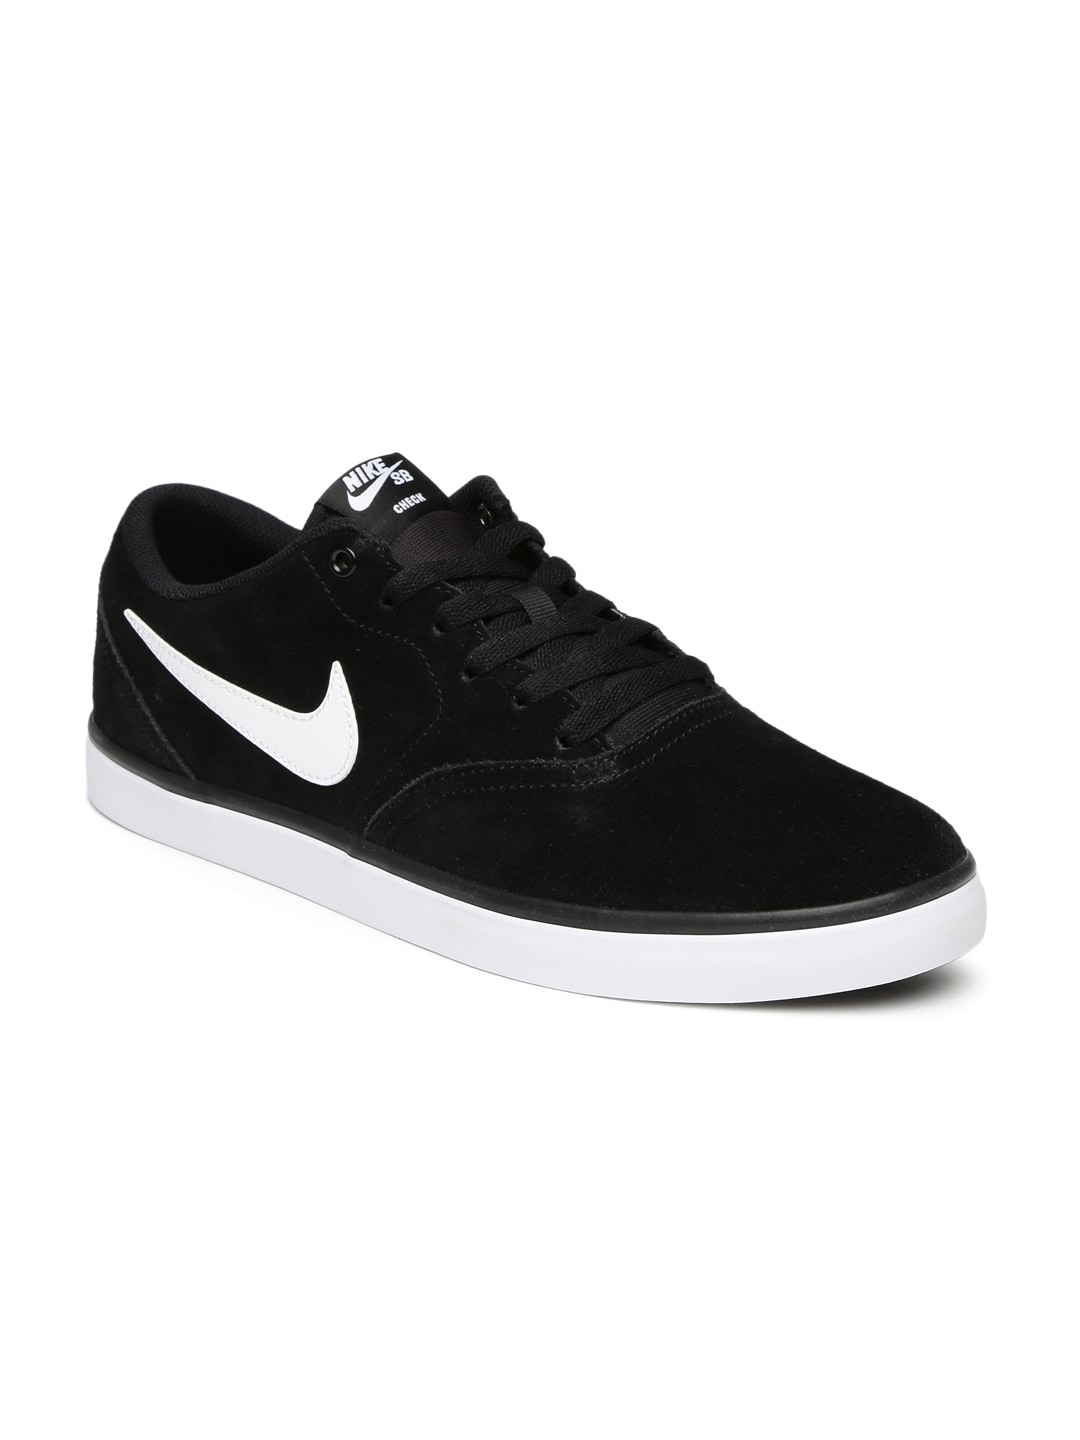 6563f39523 Skate Shoes - Buy Skate Shoes Online - Myntra